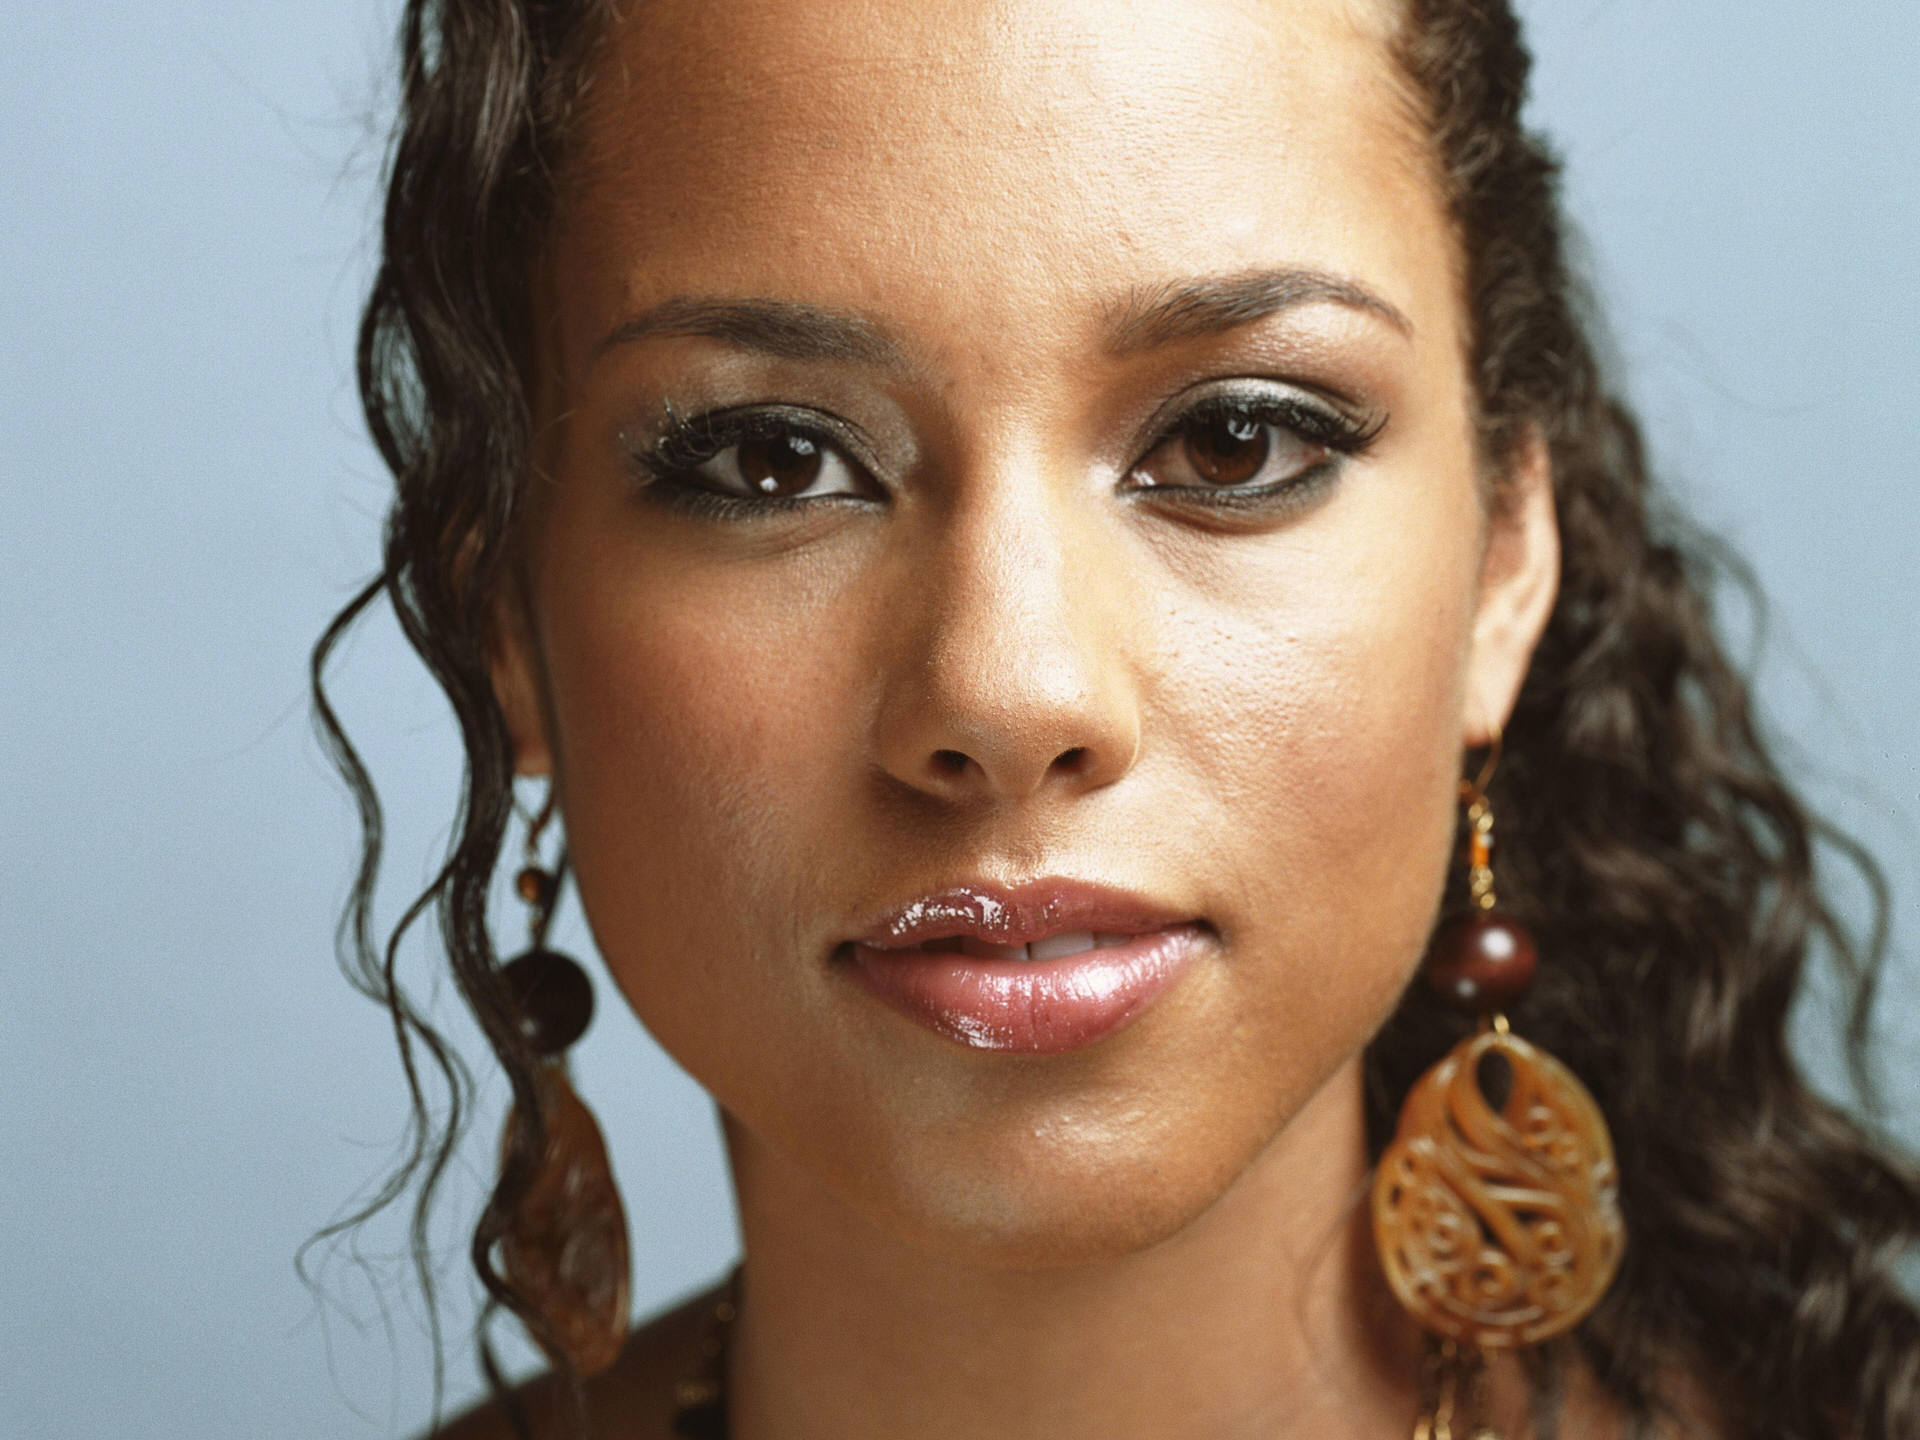 Free Alicia Keys Wallpaper 17378 1920x1080 px